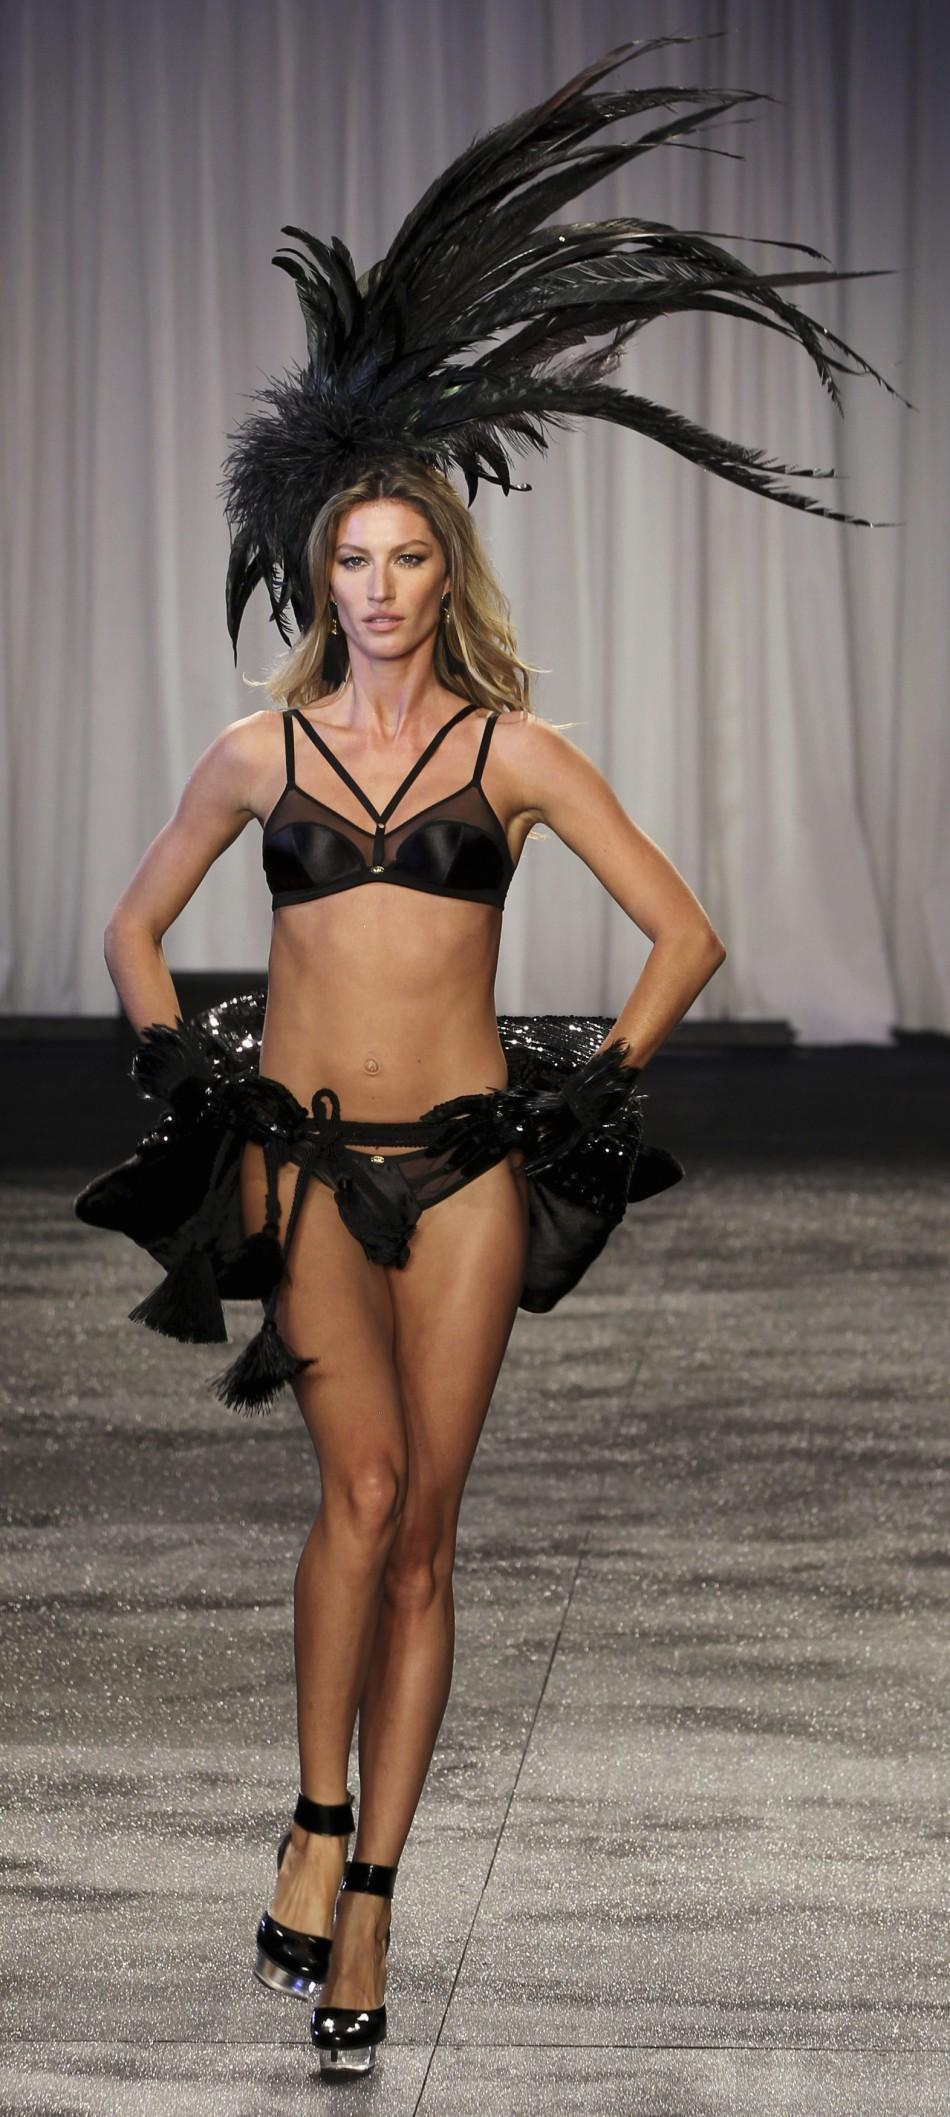 World's top 10 highest paid female models of 2011 - number 1.